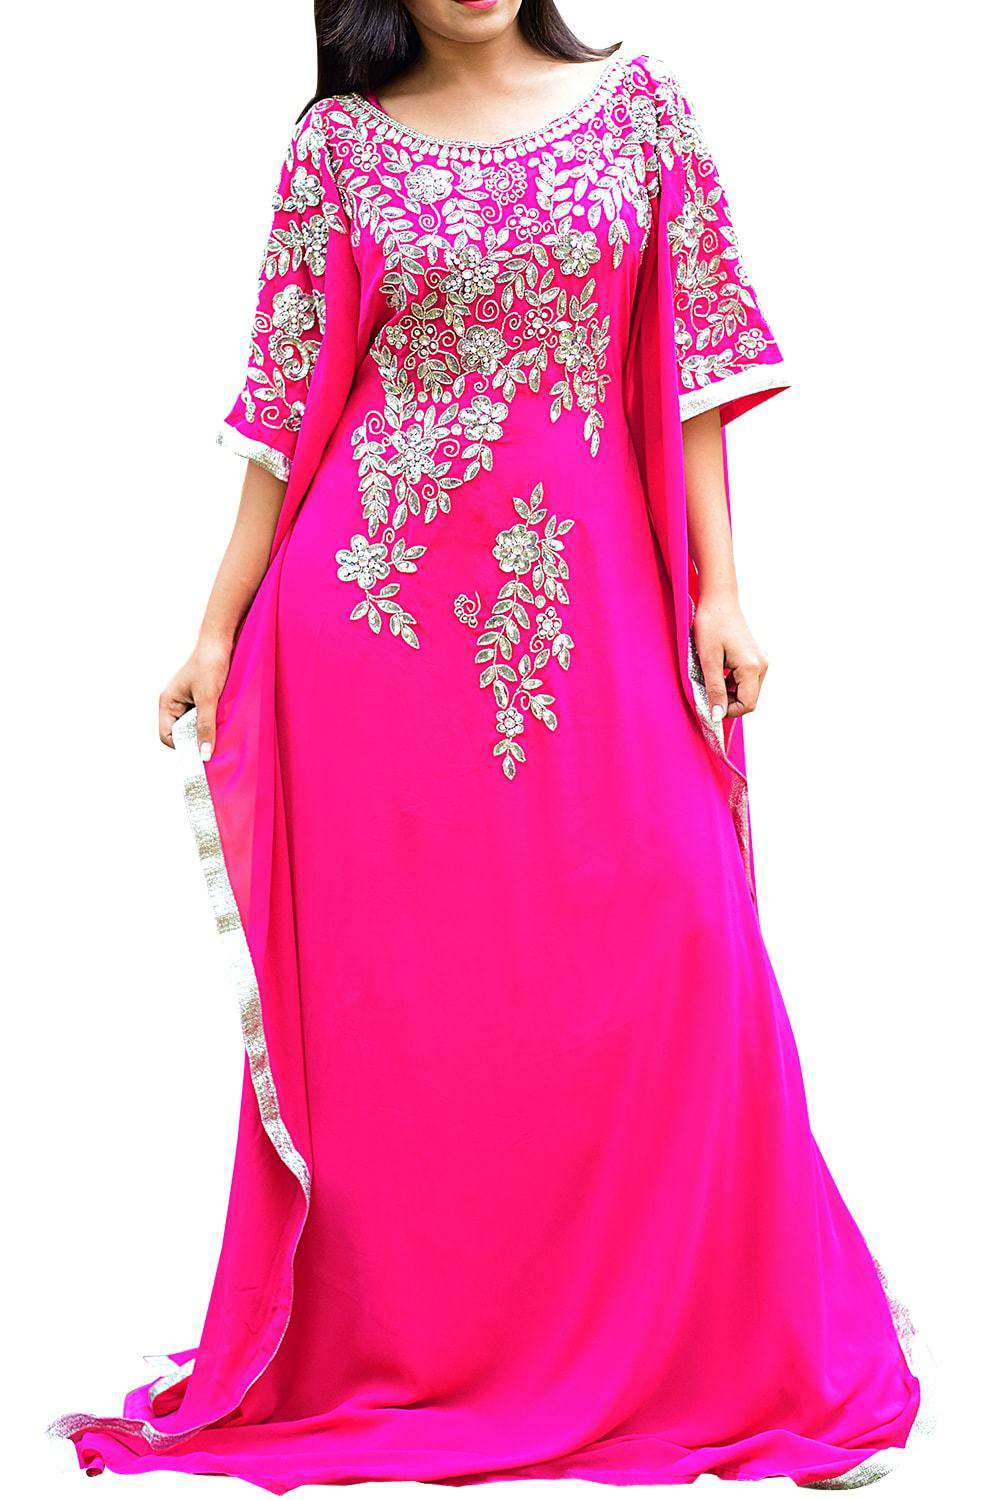 Scintillating Pink Color Georgette Embroidered Kaftan - Free Size